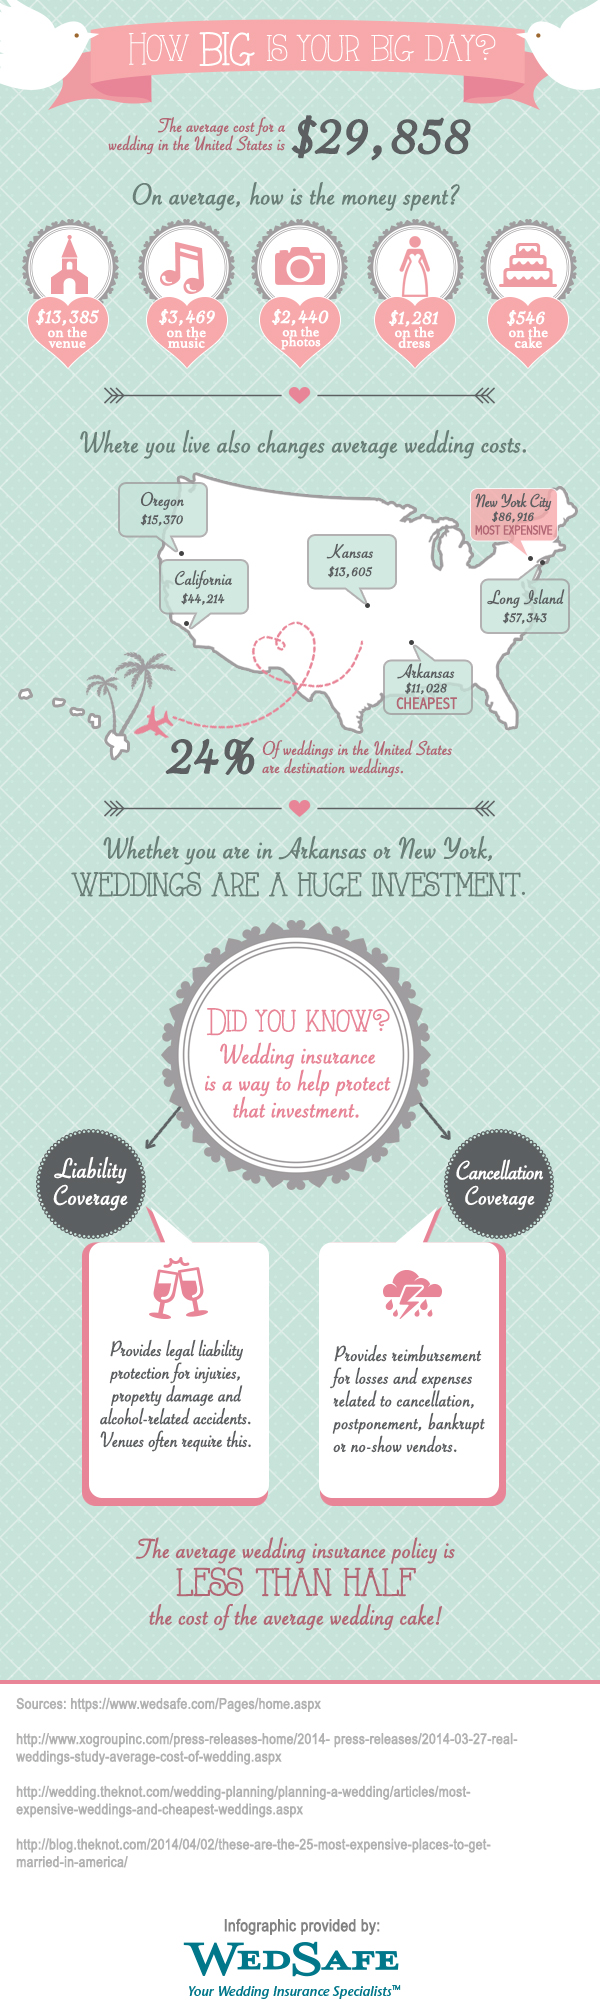 Wedding budget, Huge cost of weddings and how to protect it